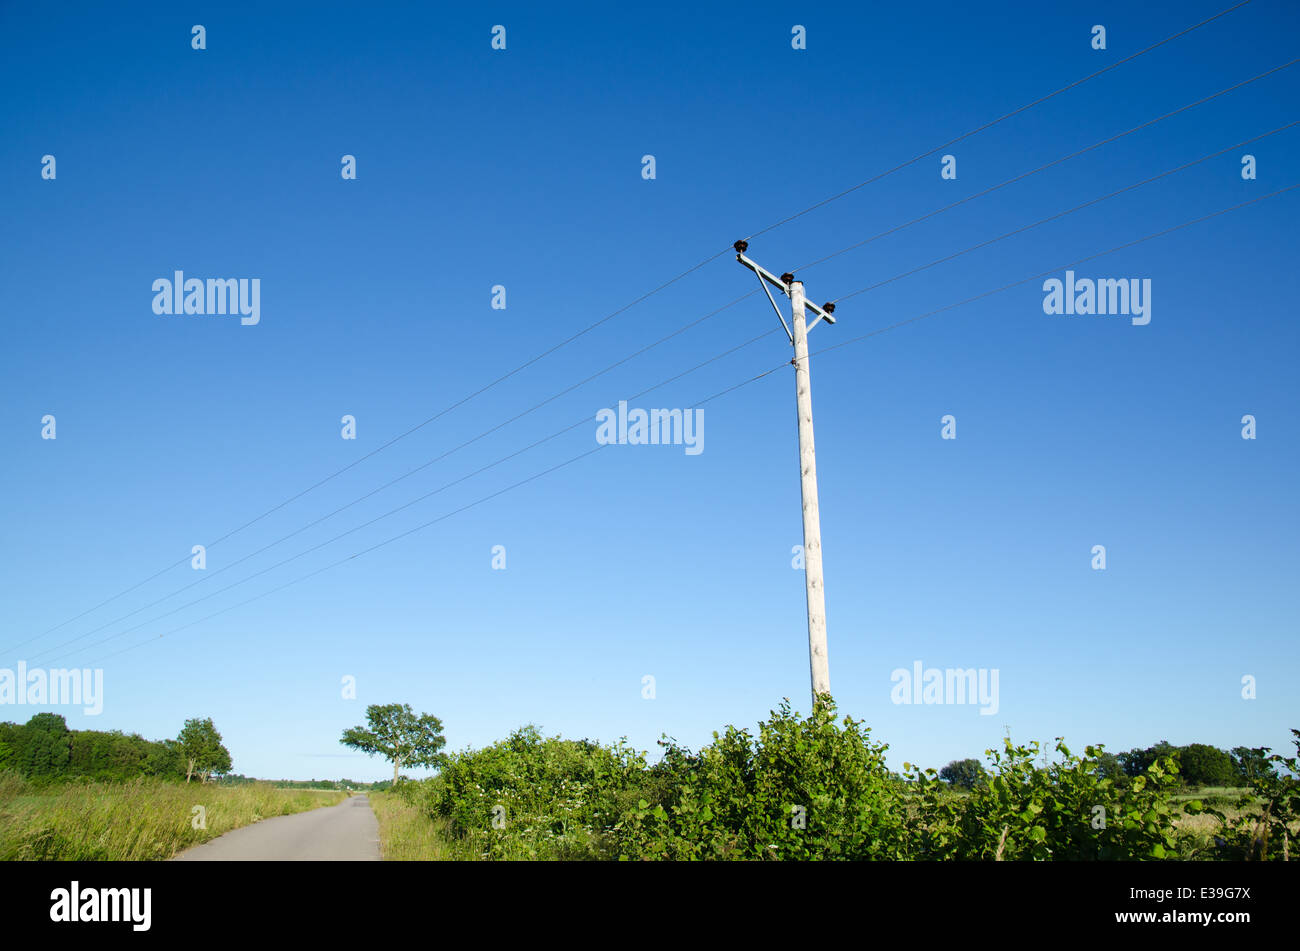 Pole with powerlines by a country road at blue sky - Stock Image